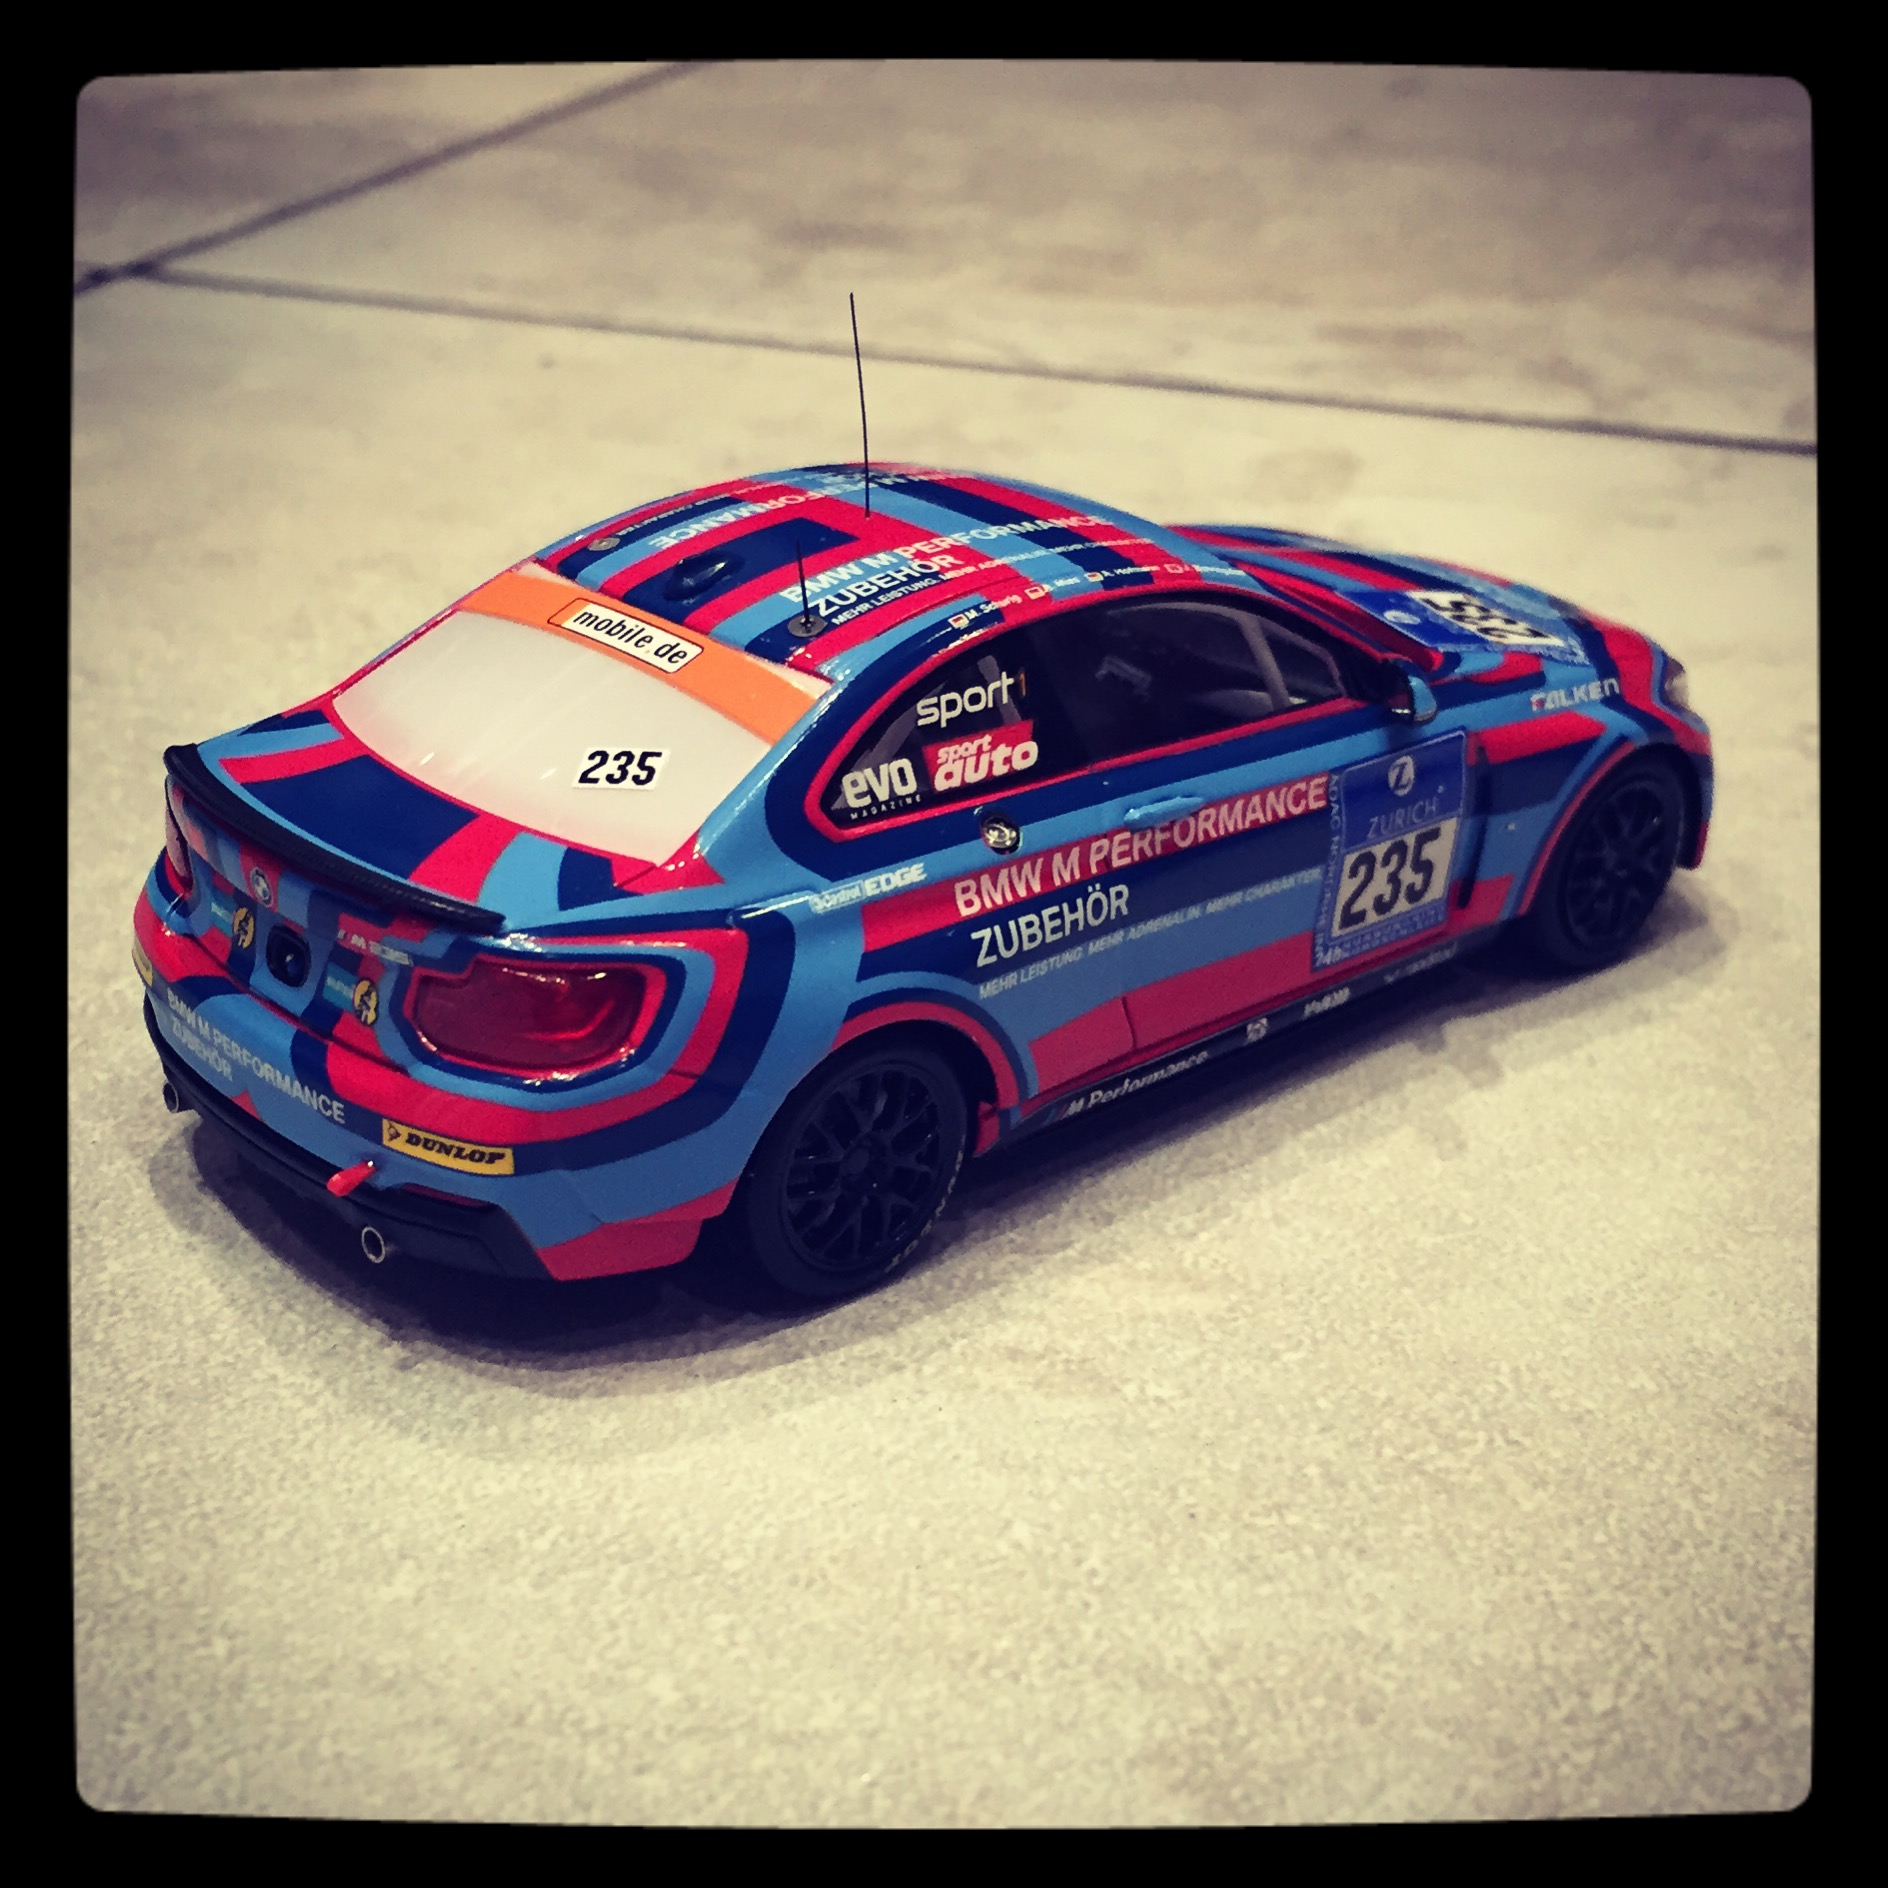 BMW M235i (F22) racing, team BMW Motorsport, #235 Bovingdon/Hofmann/Mies/Schurig, 24h Nurburgring 2014, le 1 of 514pcs. (Minichamps)